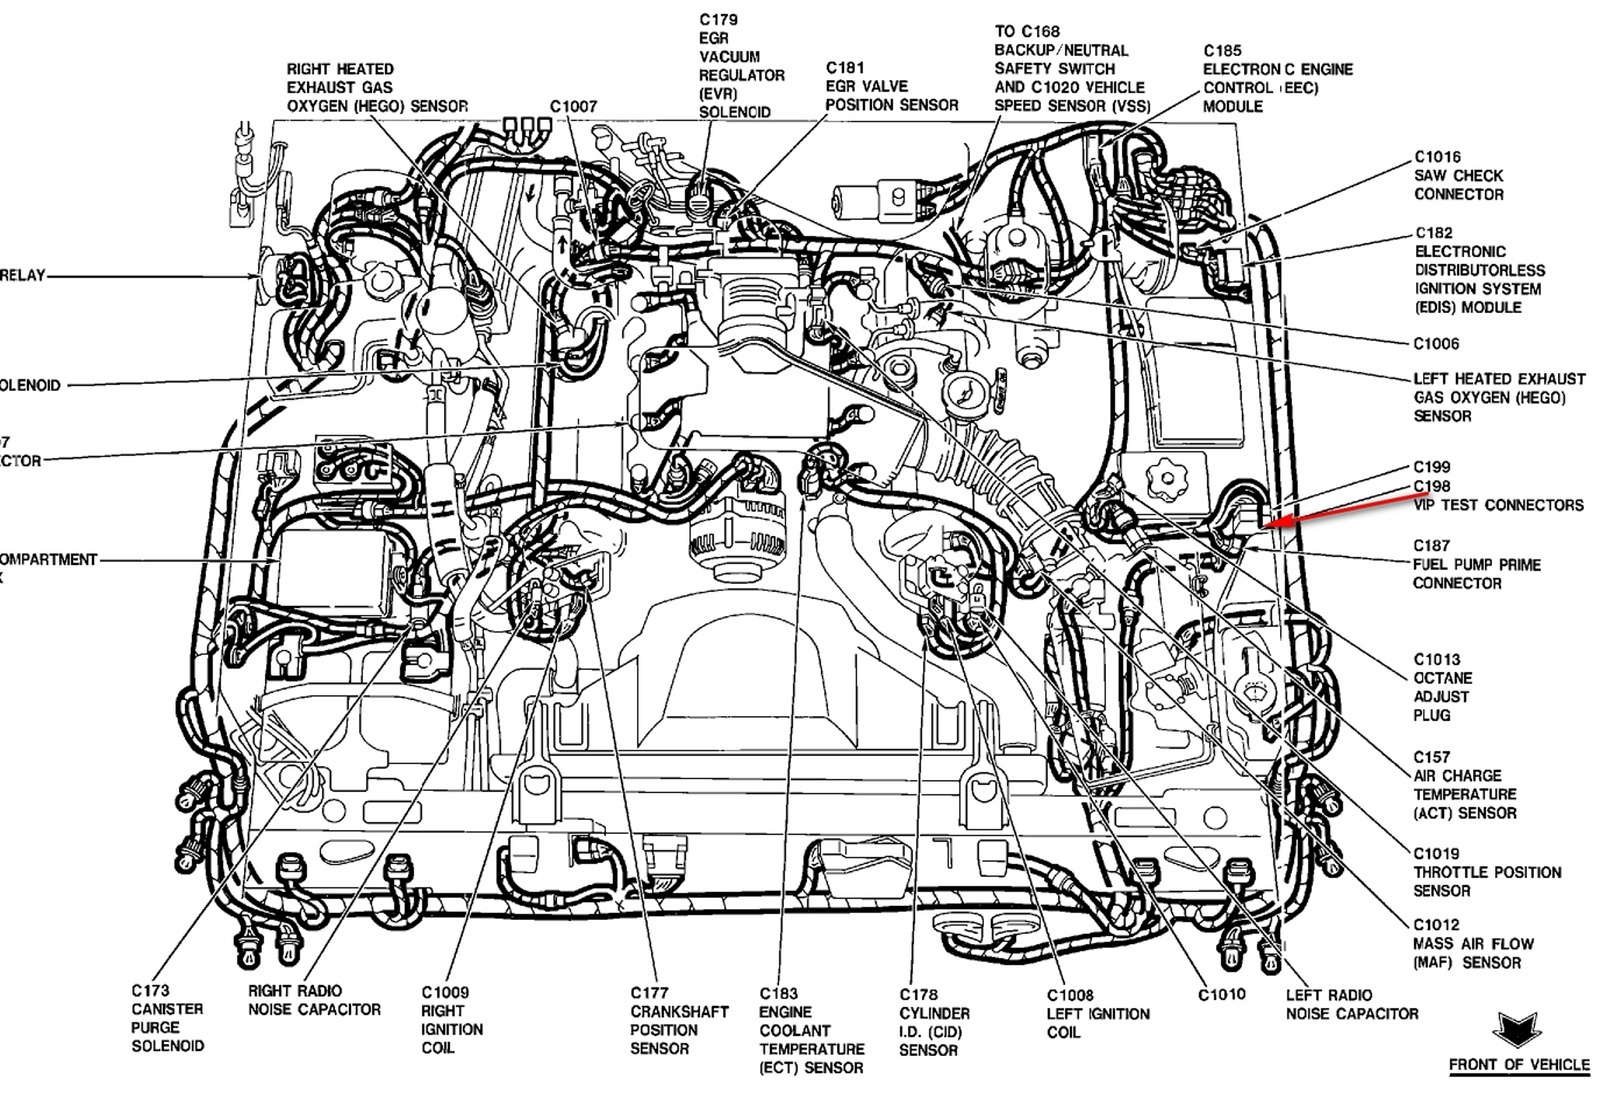 Coolant Flow 4 6l Based Powertrains Crownvic Pertaining To 1998 Ford Ranger Cooling System Diagram besides Ecoboost 3 5 Firing Order Diagram in addition 7rvm7 Lincoln Lincoln Town Car 1997 Lincoln Town Car also 2001 Honda Accord Brake Line Diagram in addition Cat 3126 Overheating Problems. on mercury grand marquis vacuum lines diagram